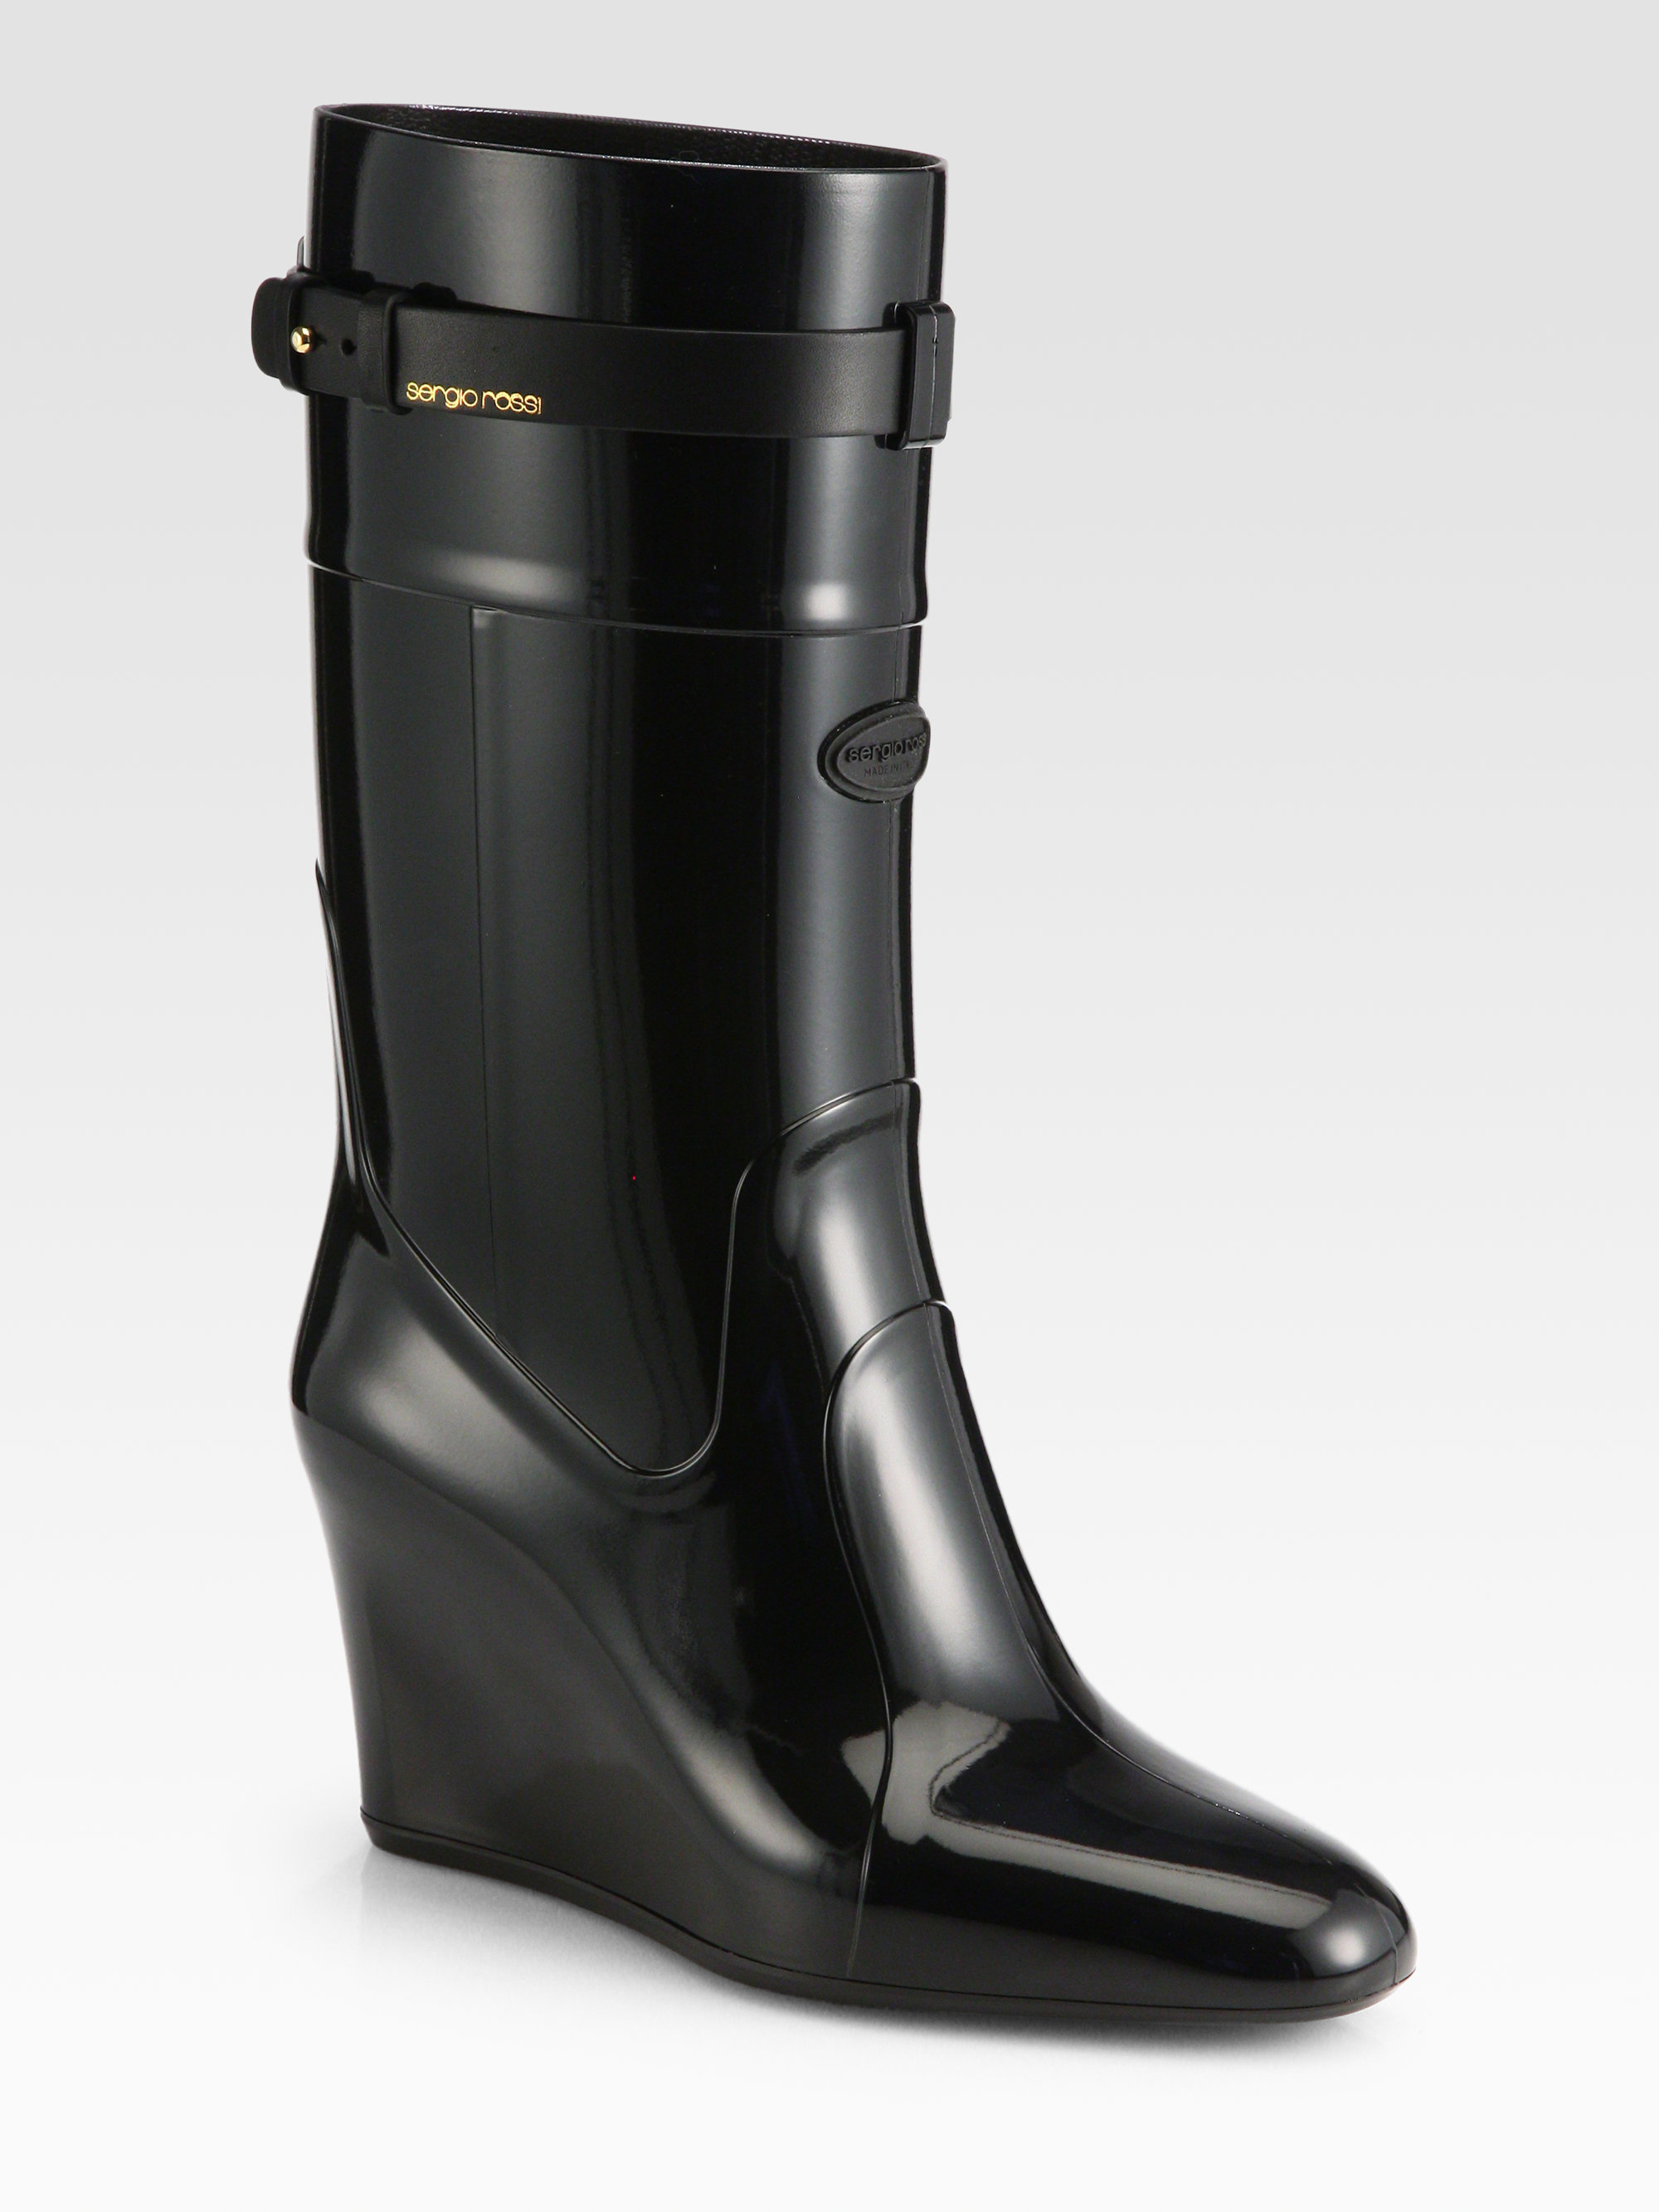 Sergio rossi Rubber Wedge Rain Boots in Black | Lyst